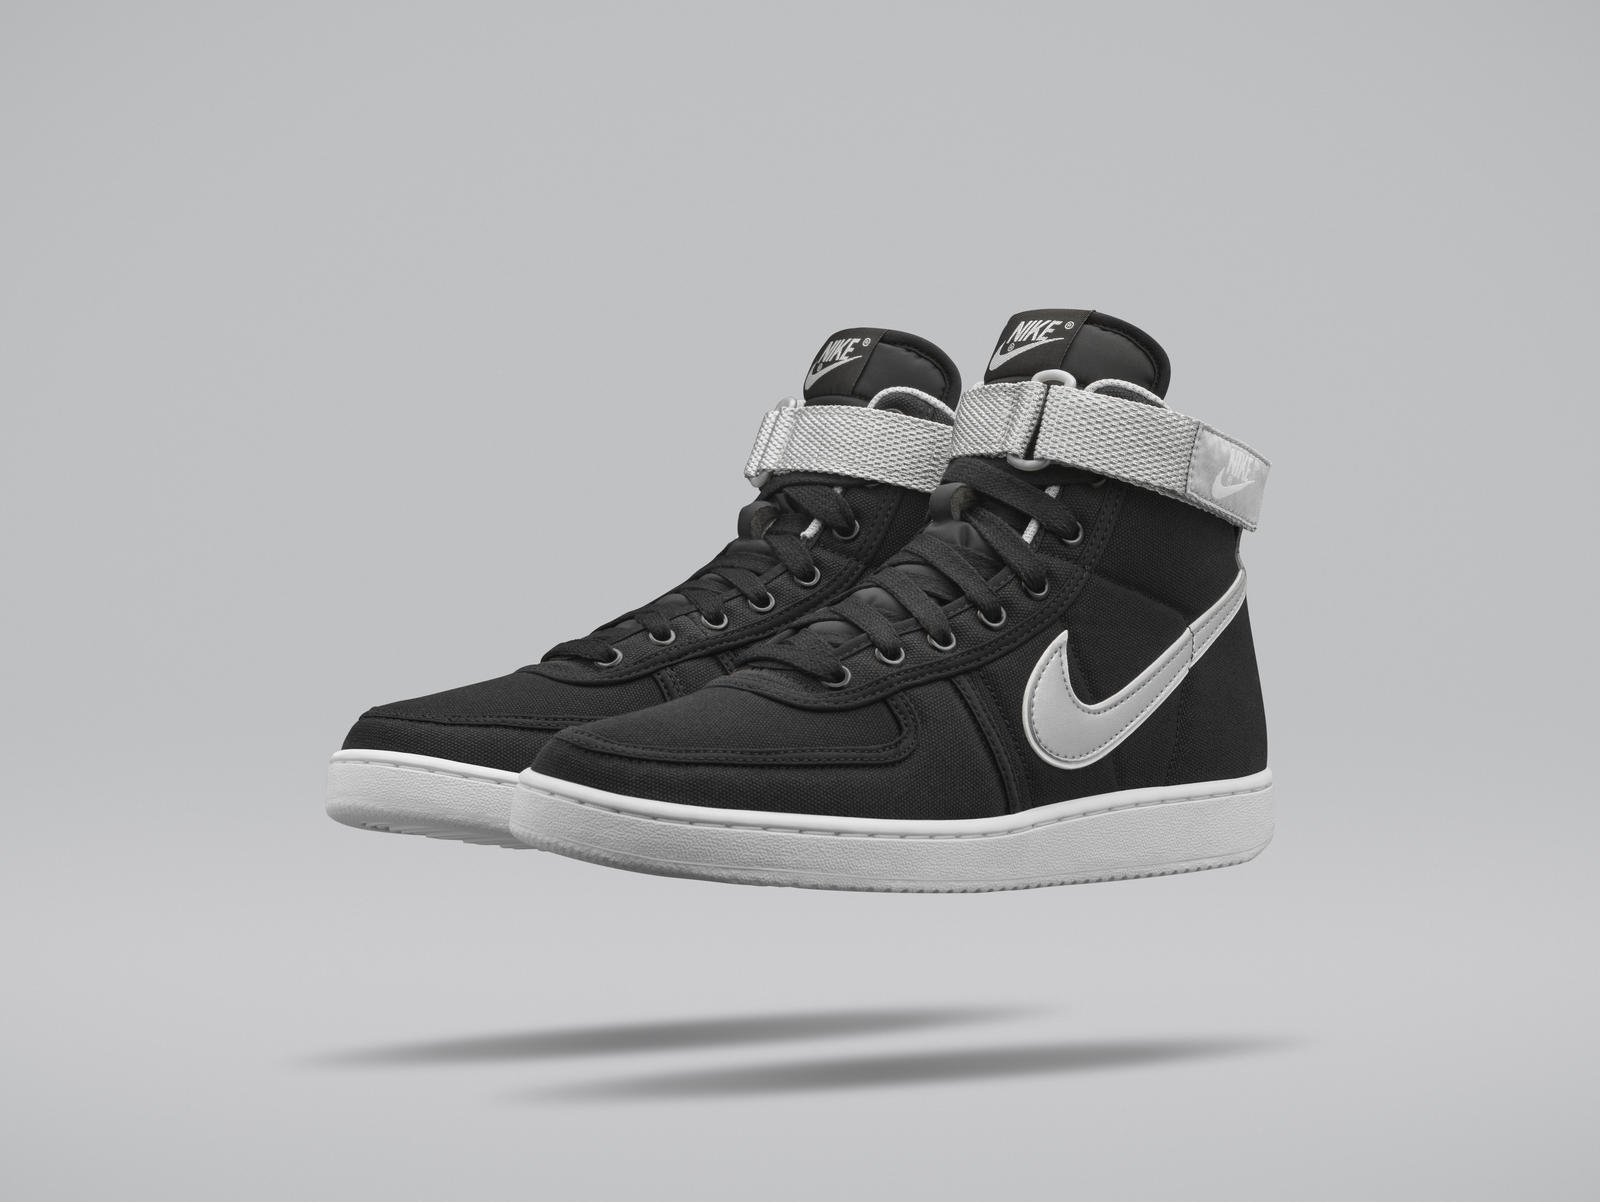 new arrival b3746 d5608 Float-806970010EPREM. NikeLab Vandal High Supreme